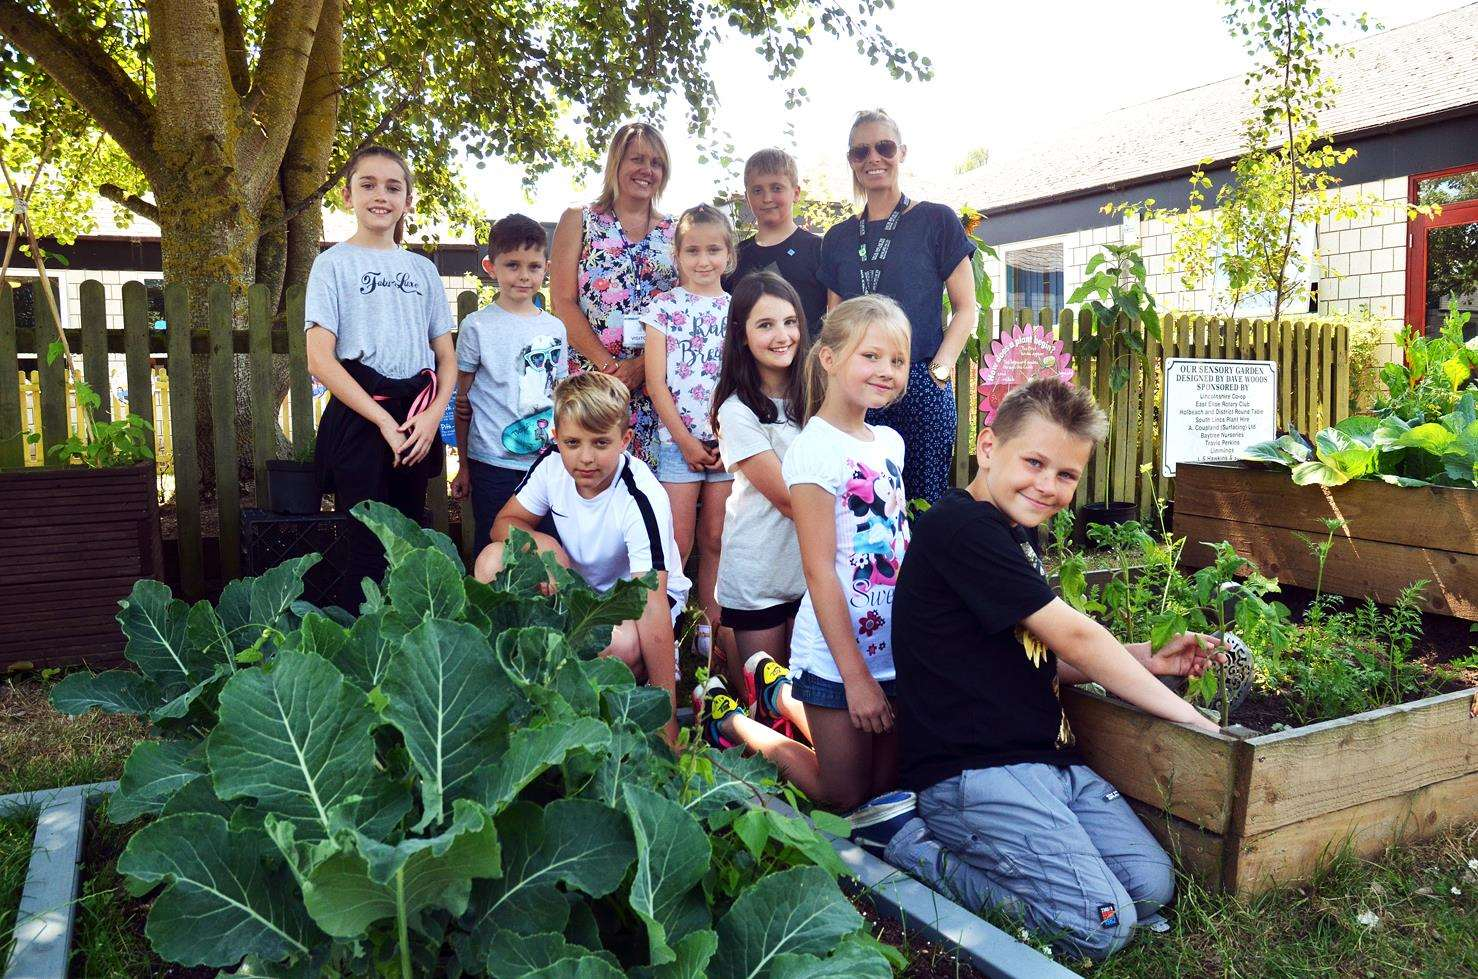 Holbeach in Bloom judging at Holbeach Primary AcademyJudge,staff and children at the vegetable patch (2919478)